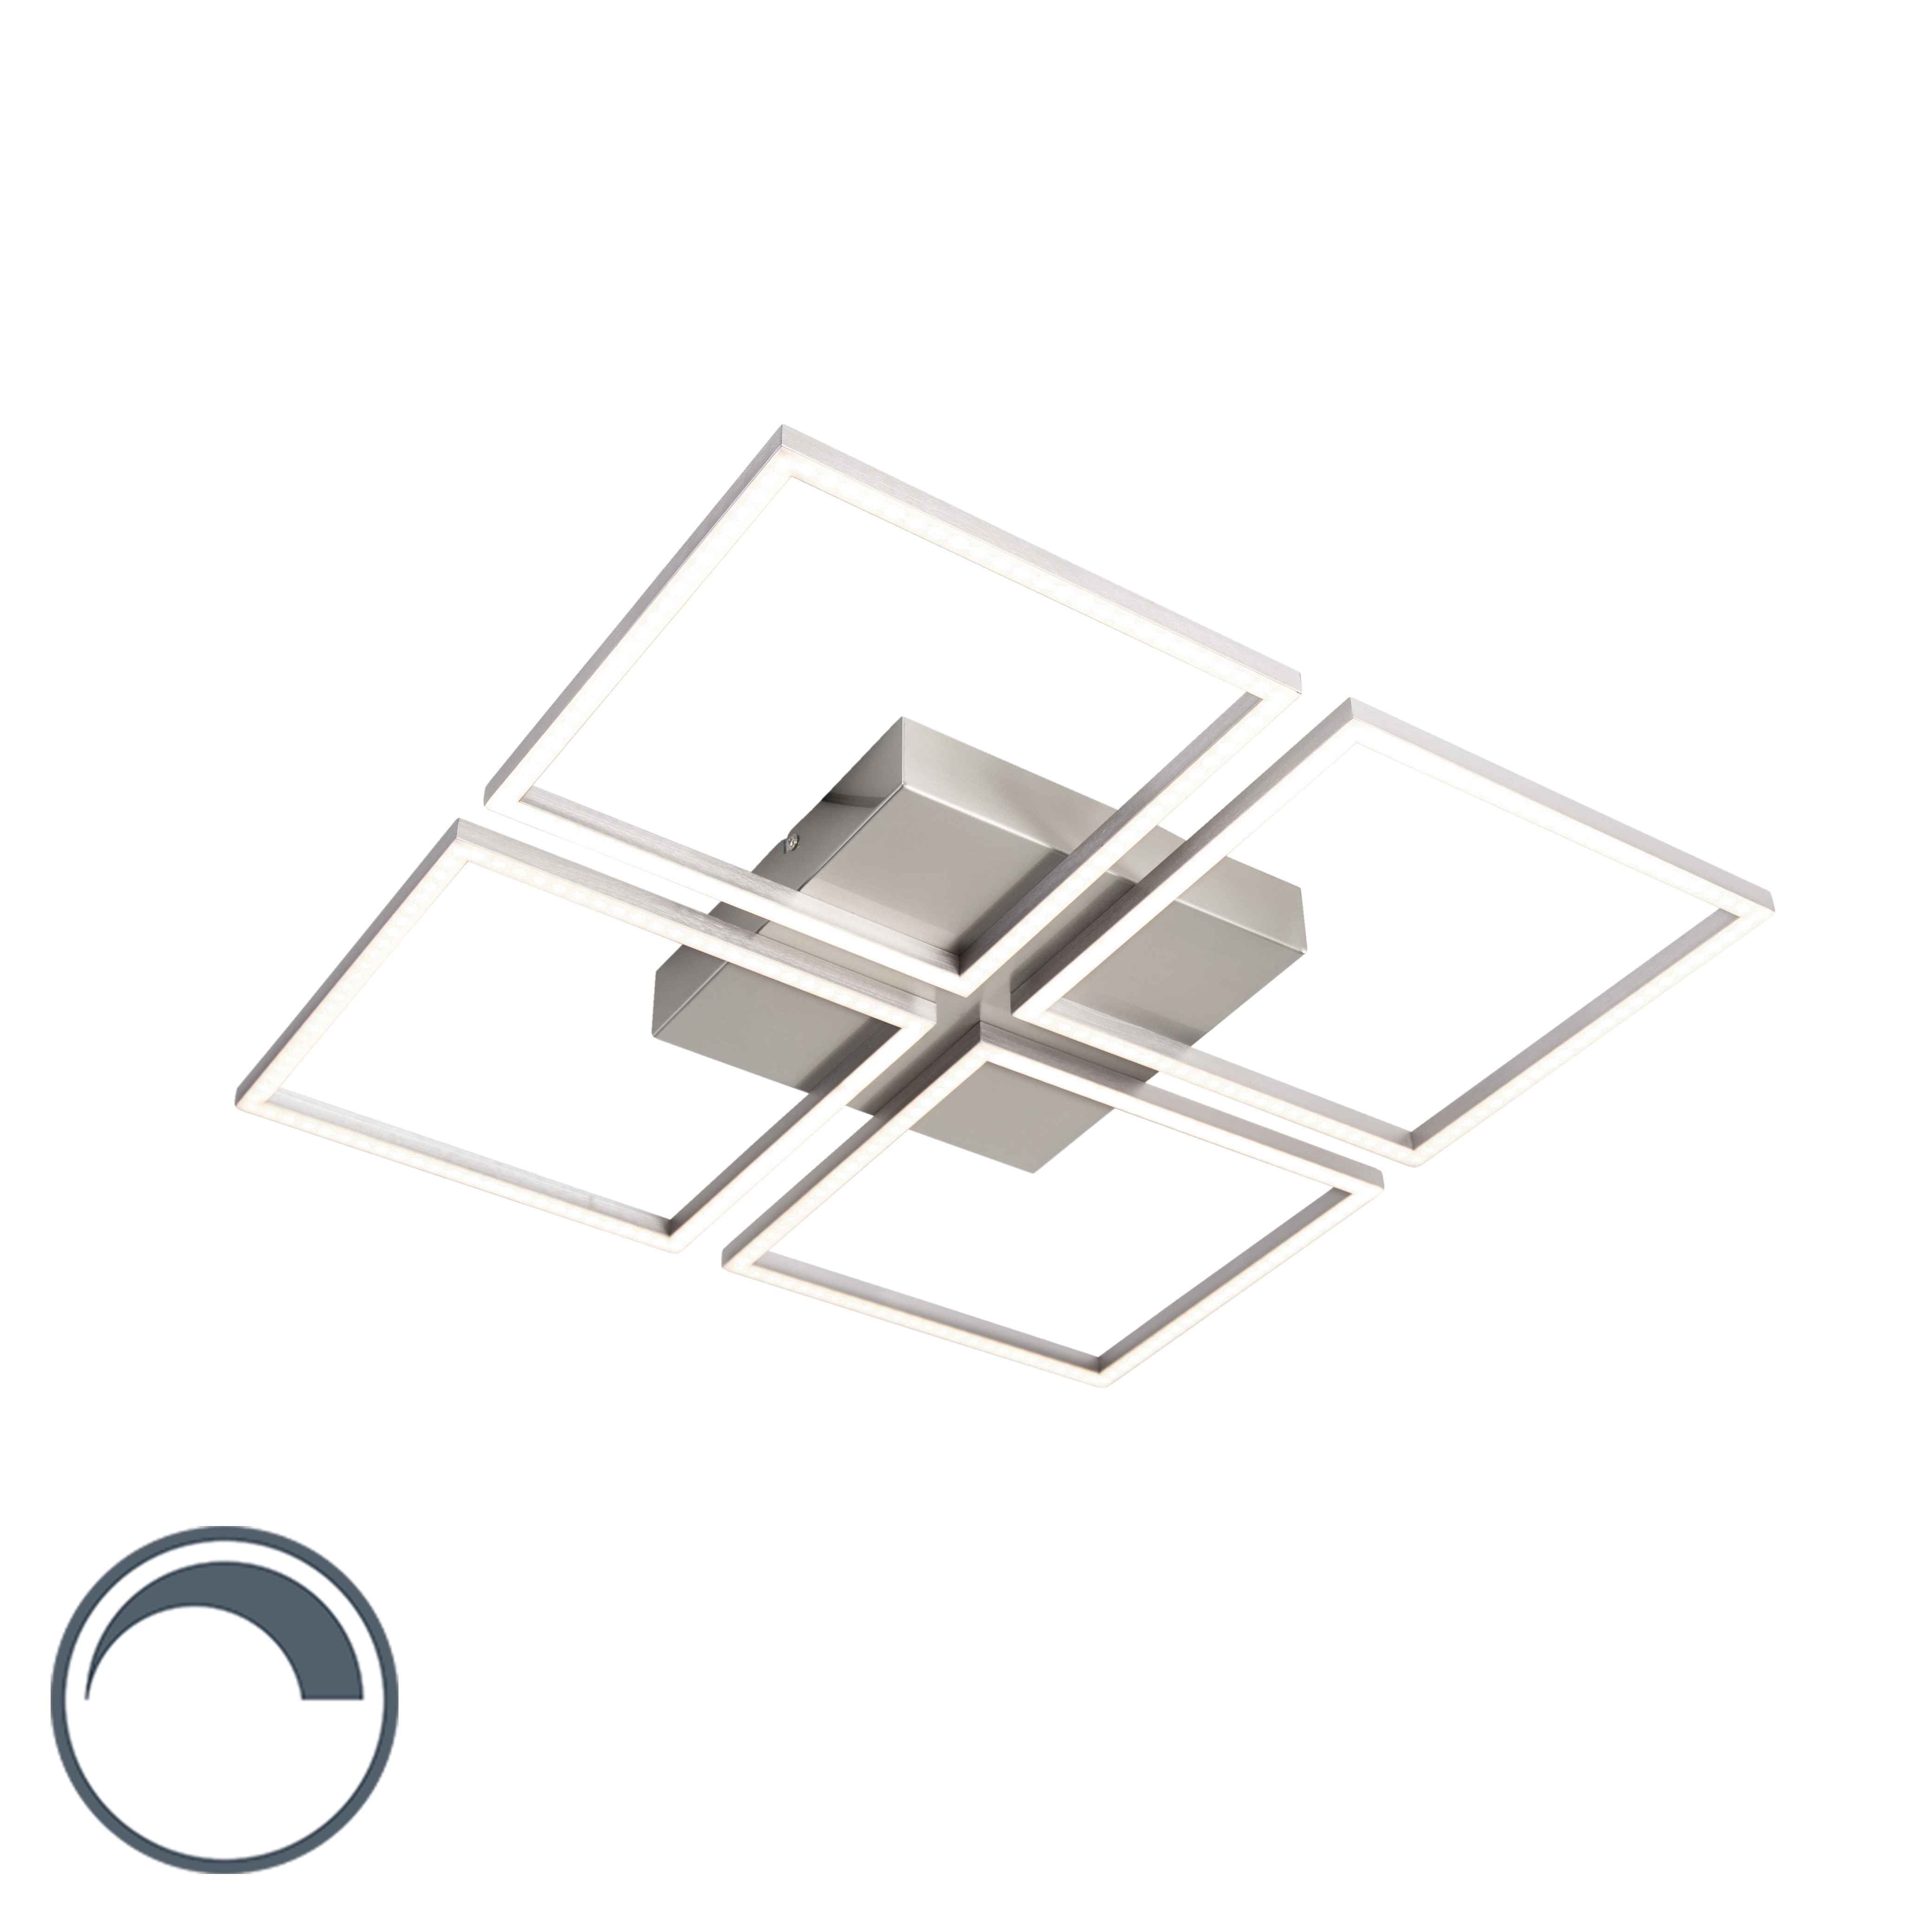 Design plafondlamp staal incl. LED en dimmer - Plazas 4